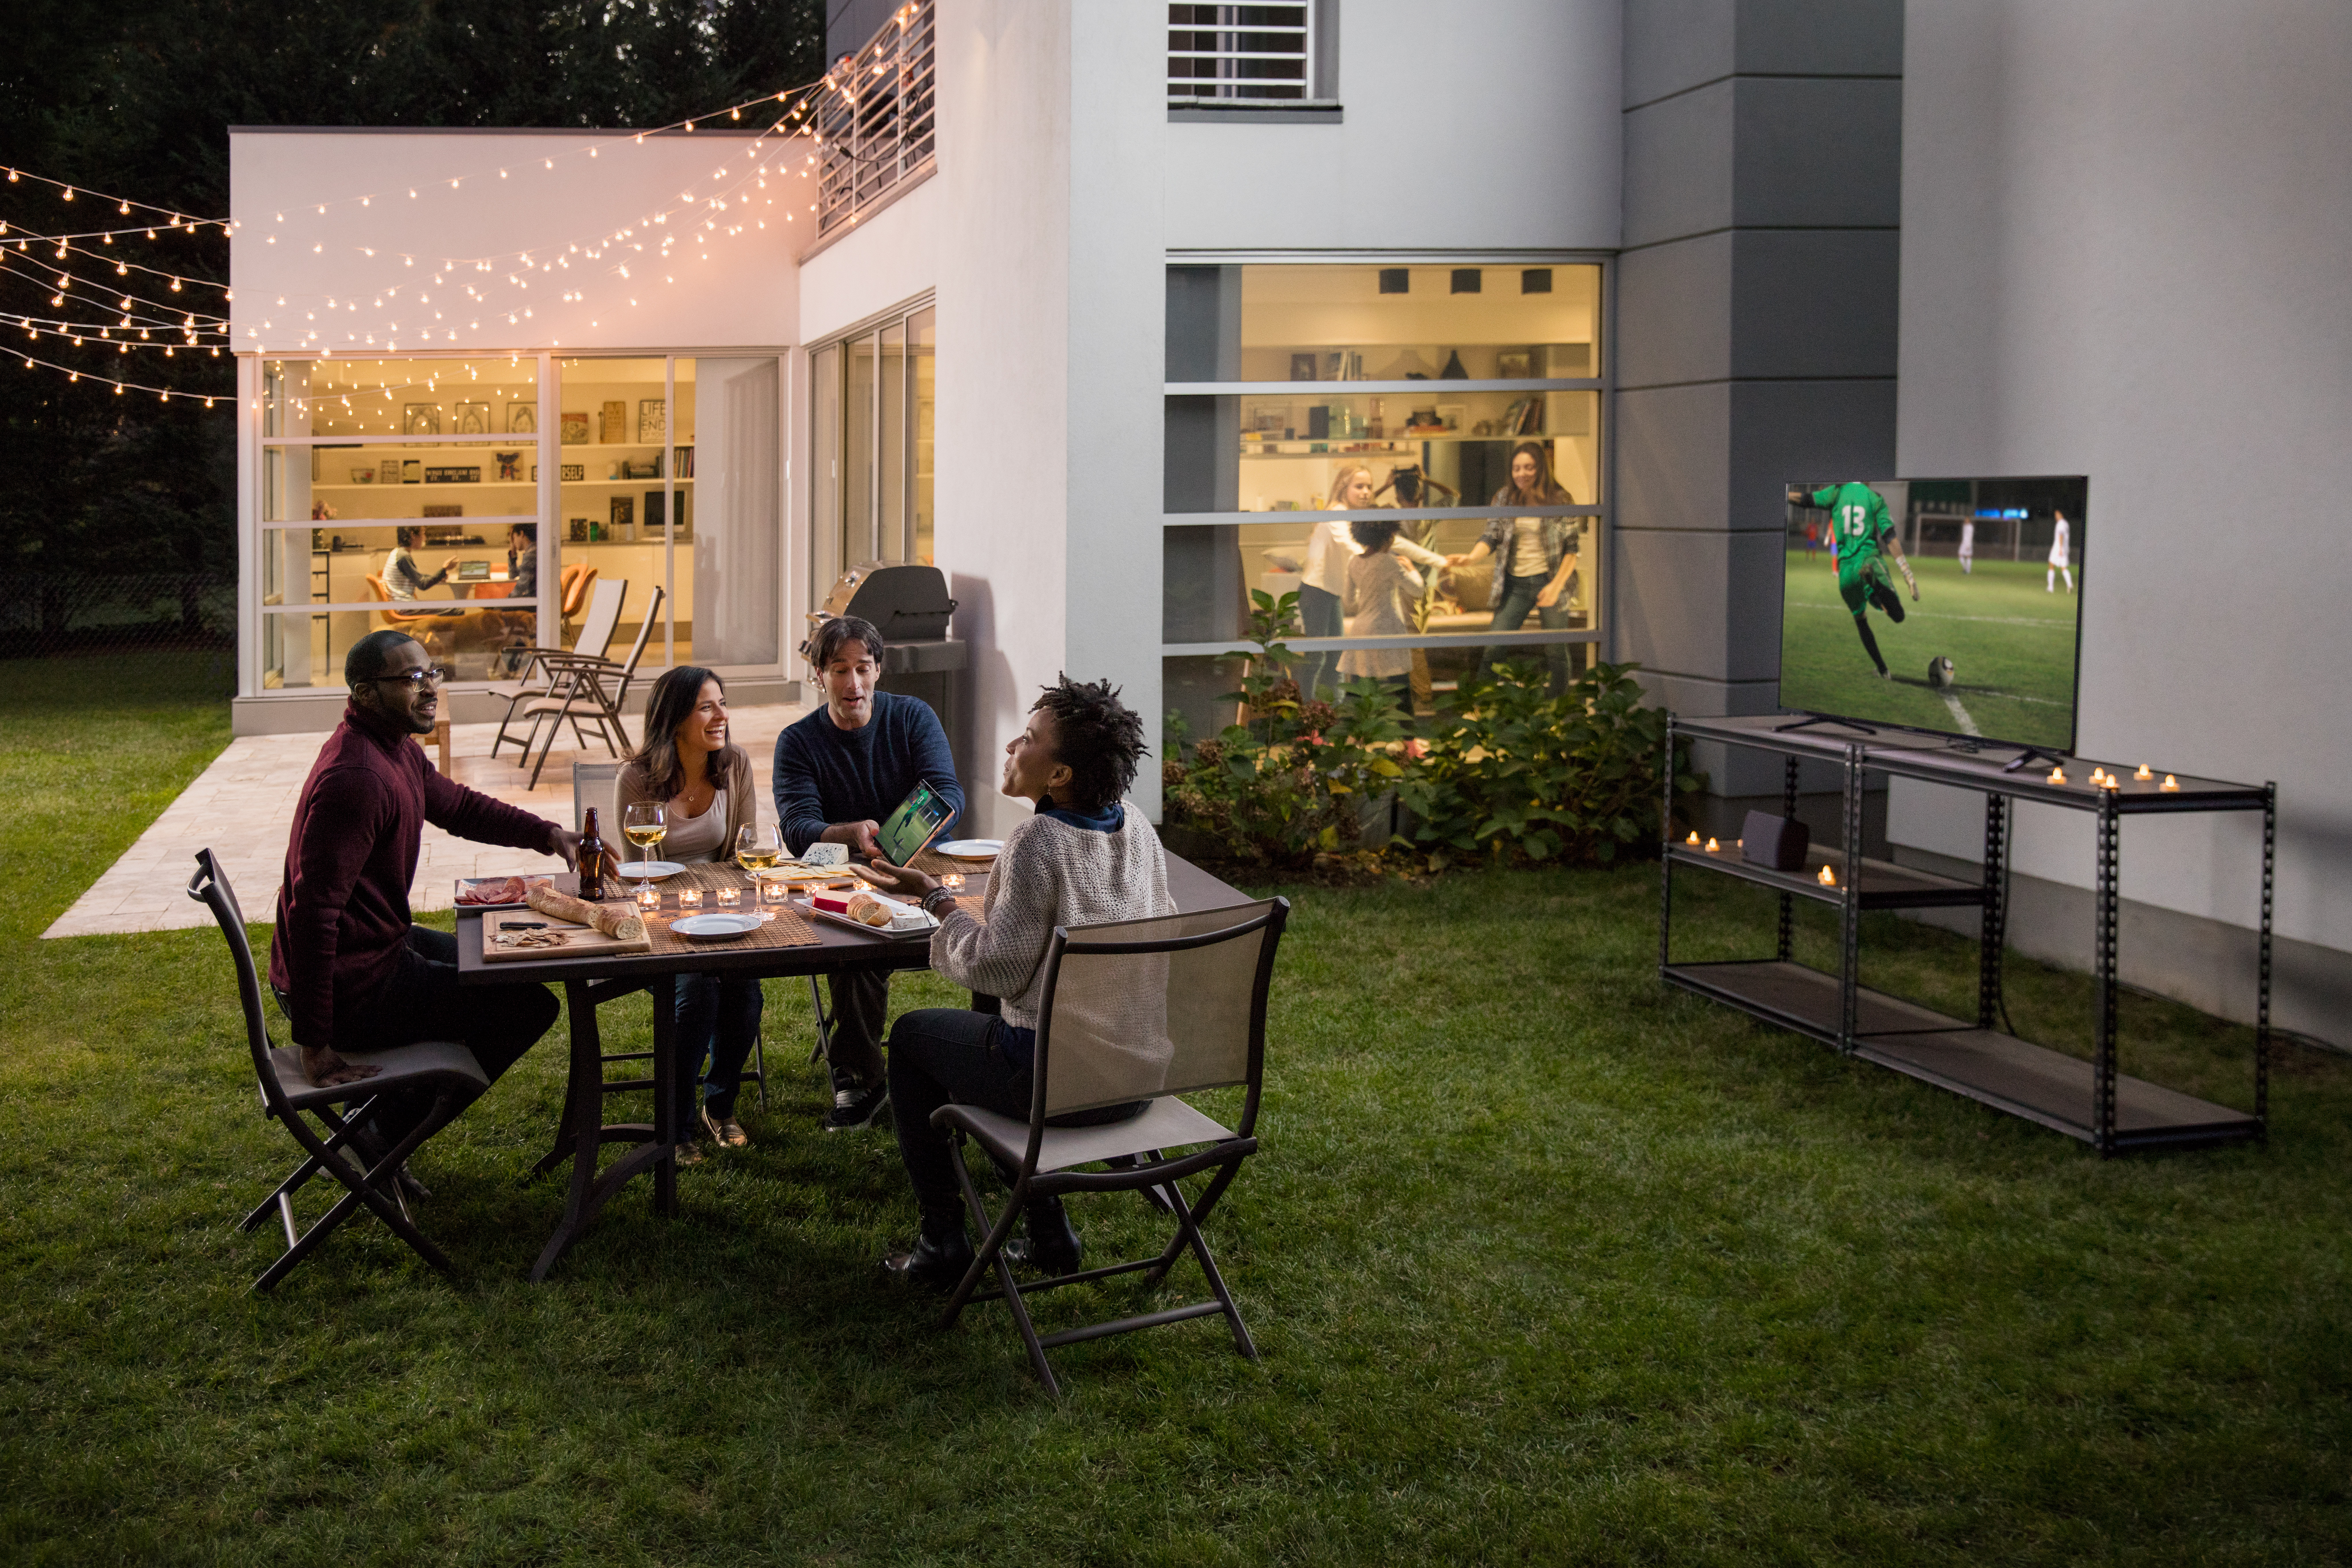 two couples at dinner in the backyard, looking at something funny on a tablet